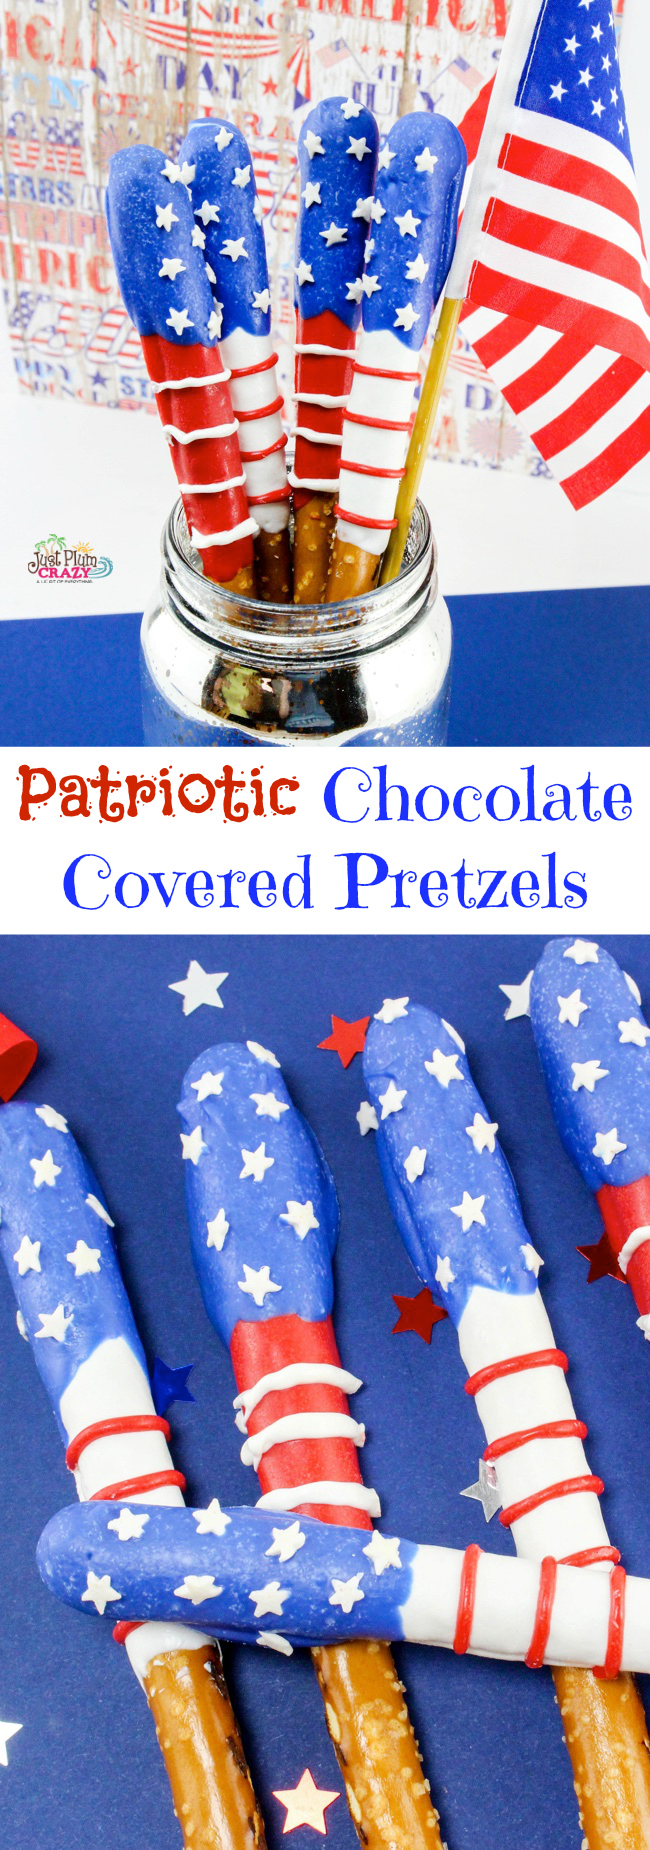 Chocolate covered pretzel recipe with a patriotic twist.